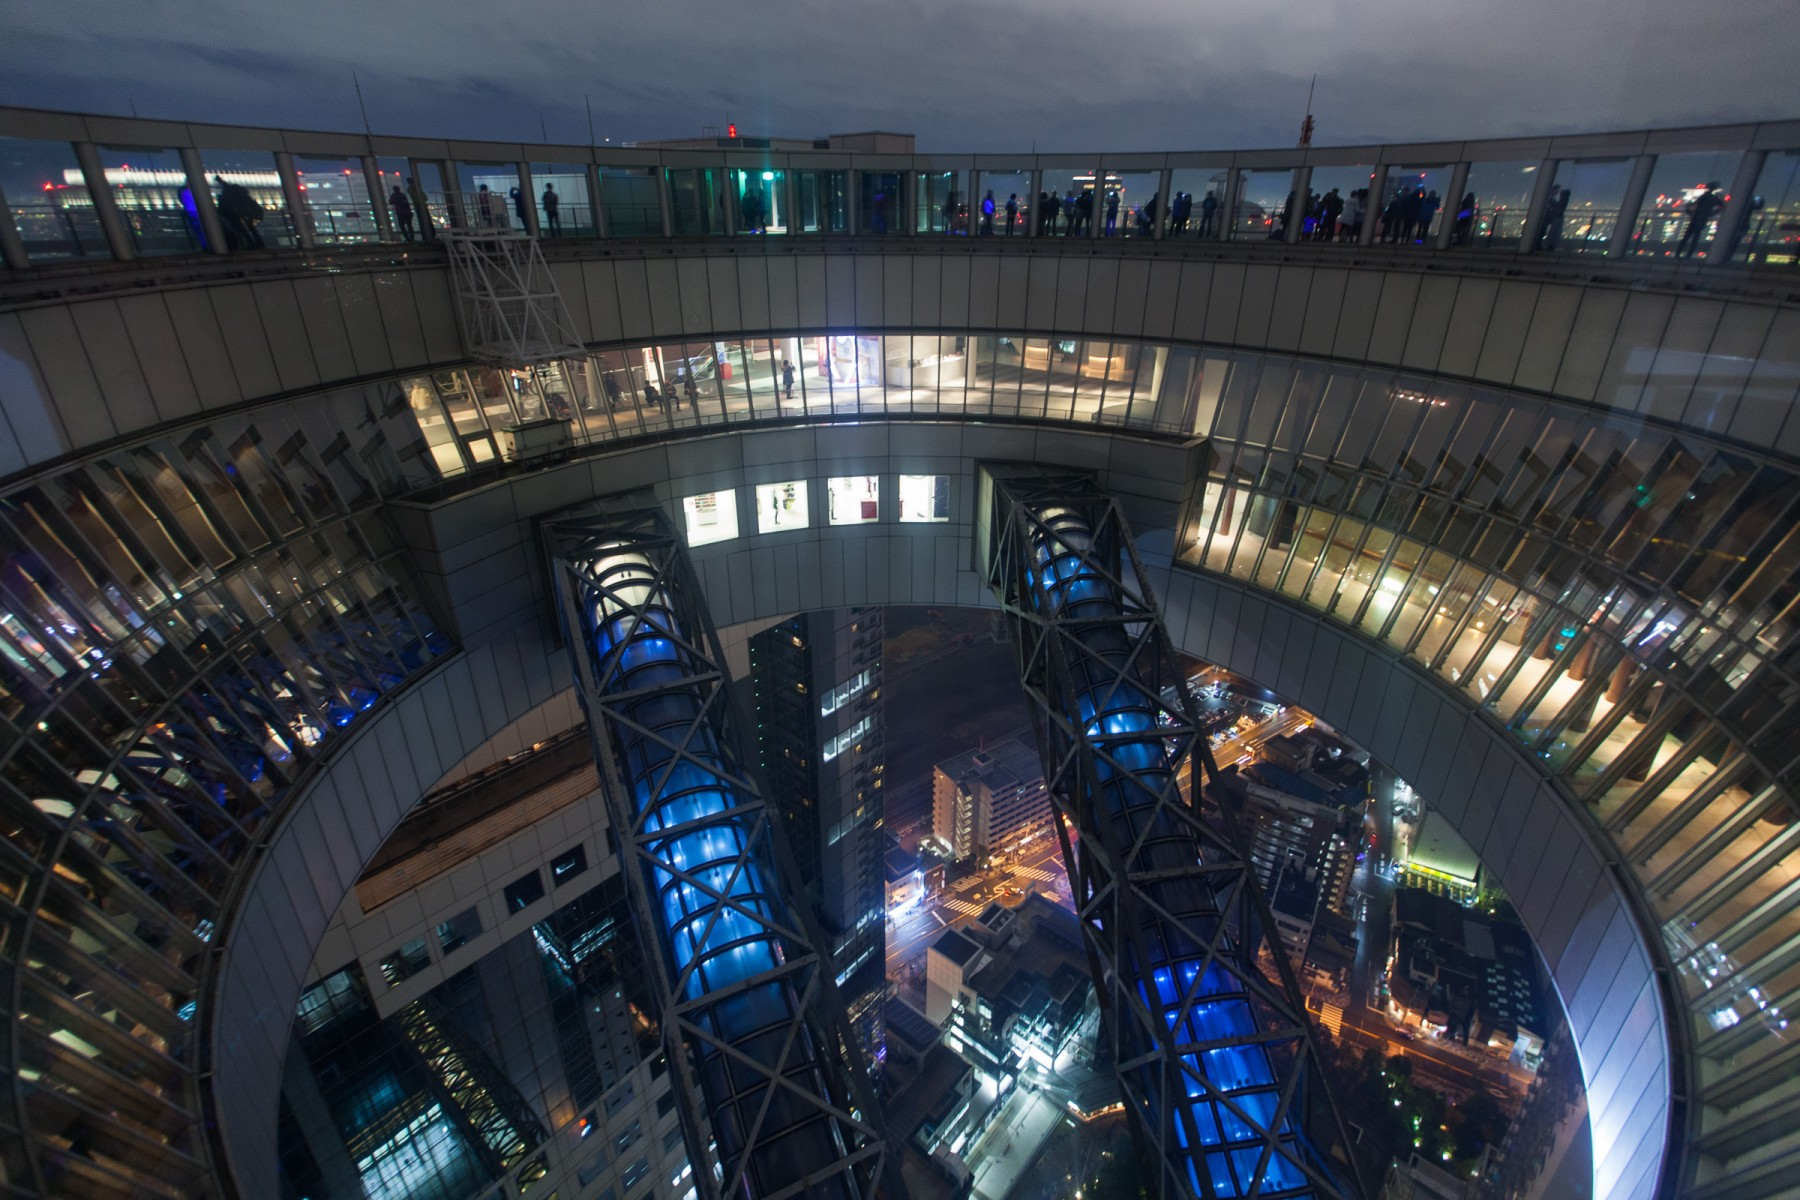 The atrium between the two towers of the Umeda Sky Building in Osaka.  You can see the enclosed 'pipes' that house the escalators that allow visitors to come and go from the observation deck.